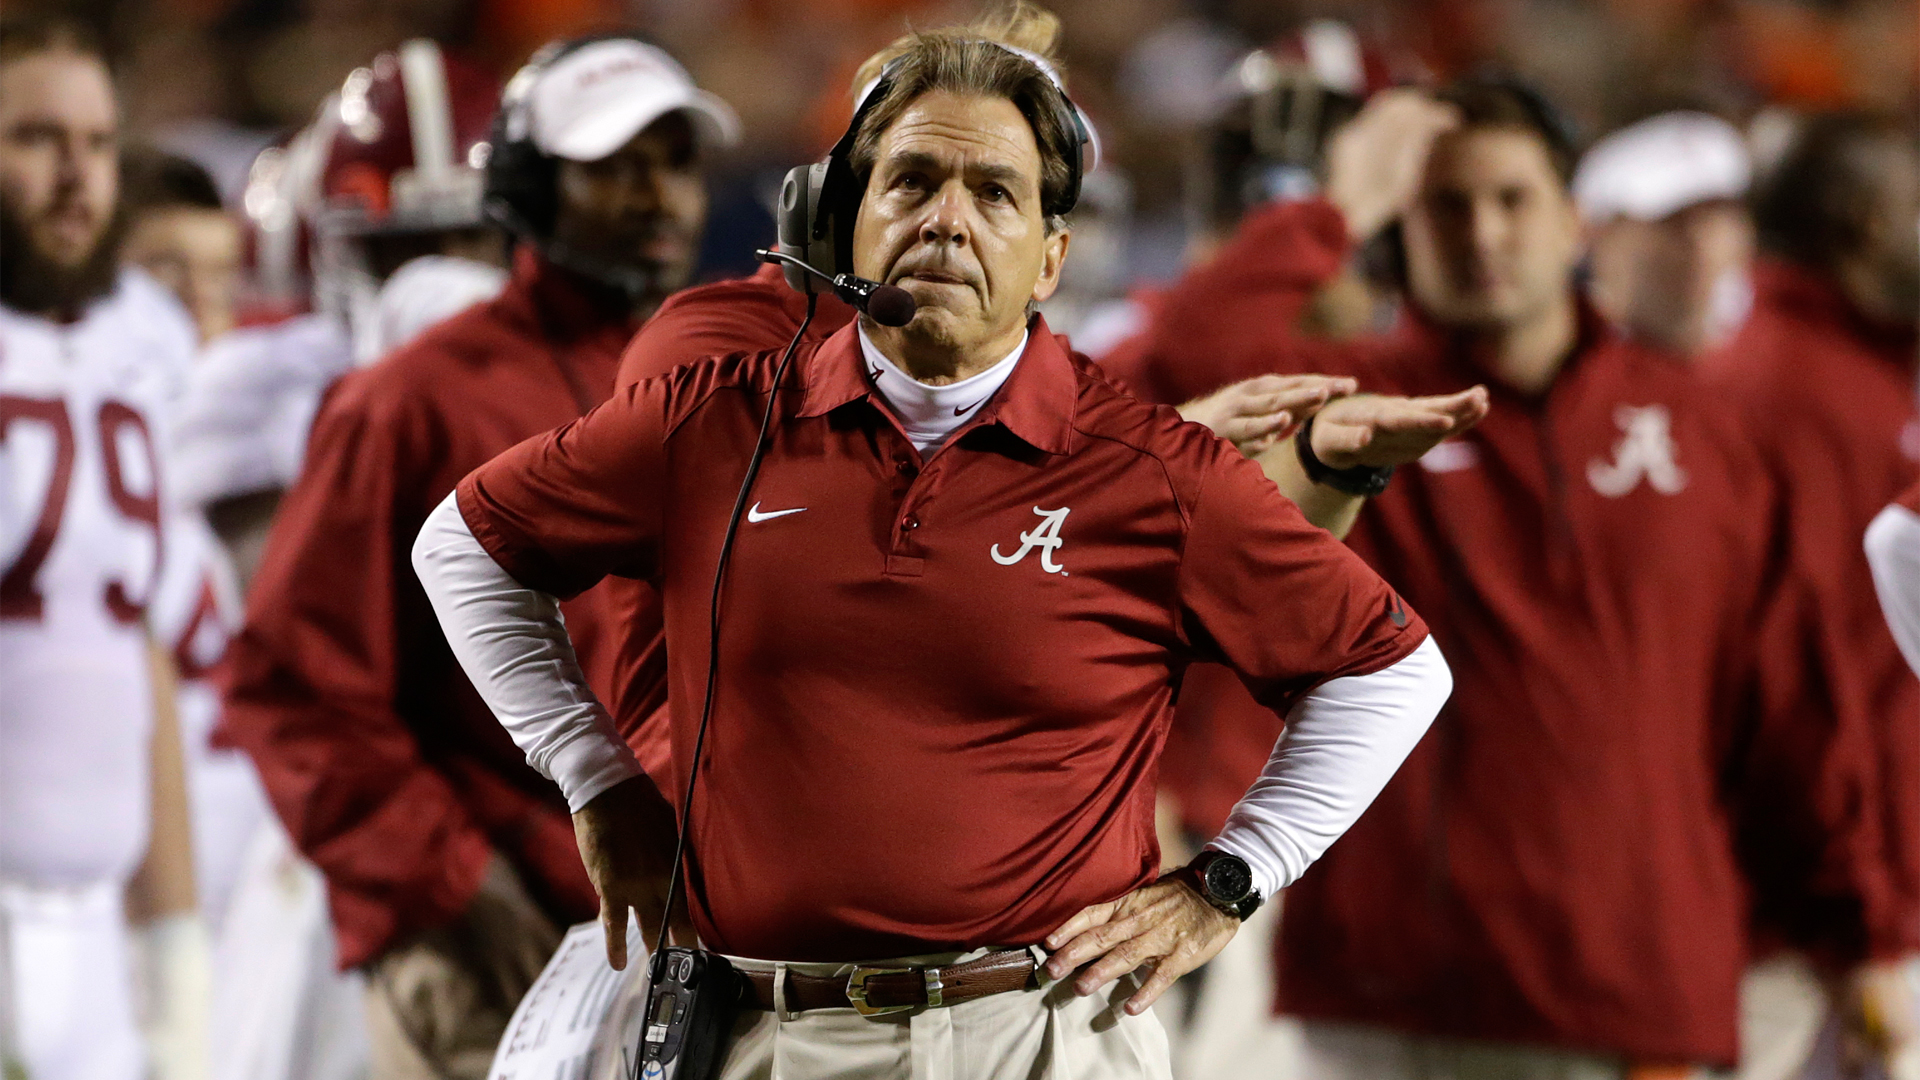 Nick-Saban-120413-FTR-AP